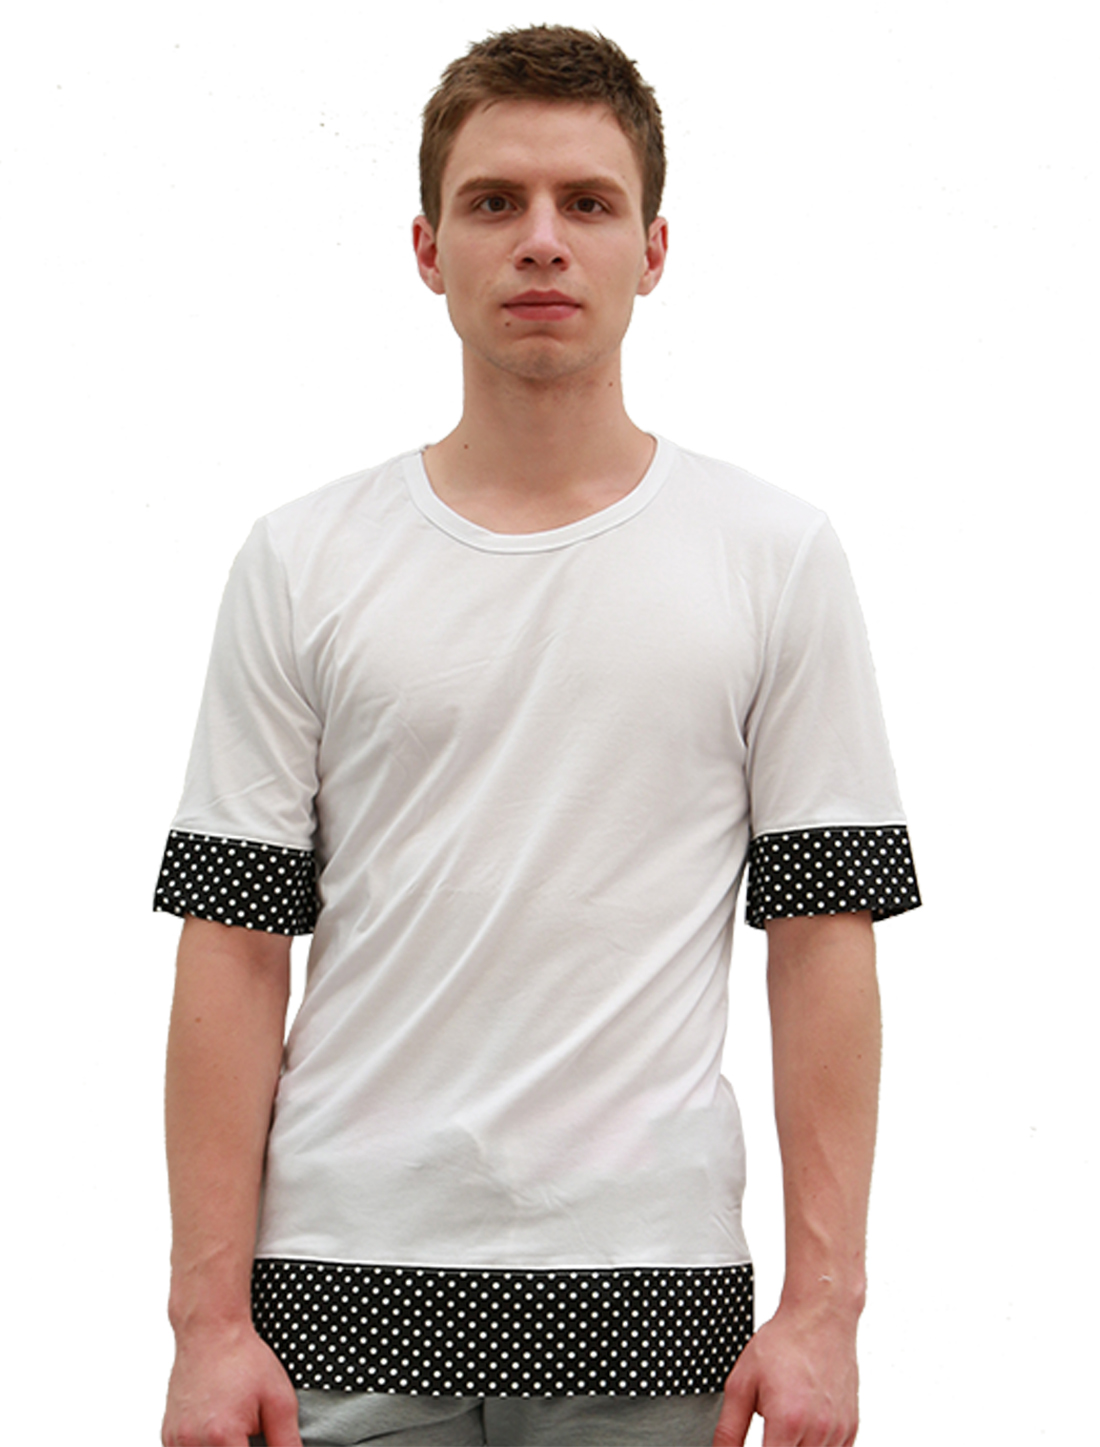 Men Dots Paneled Trim Casual Crew Neck Tee Shirts White S